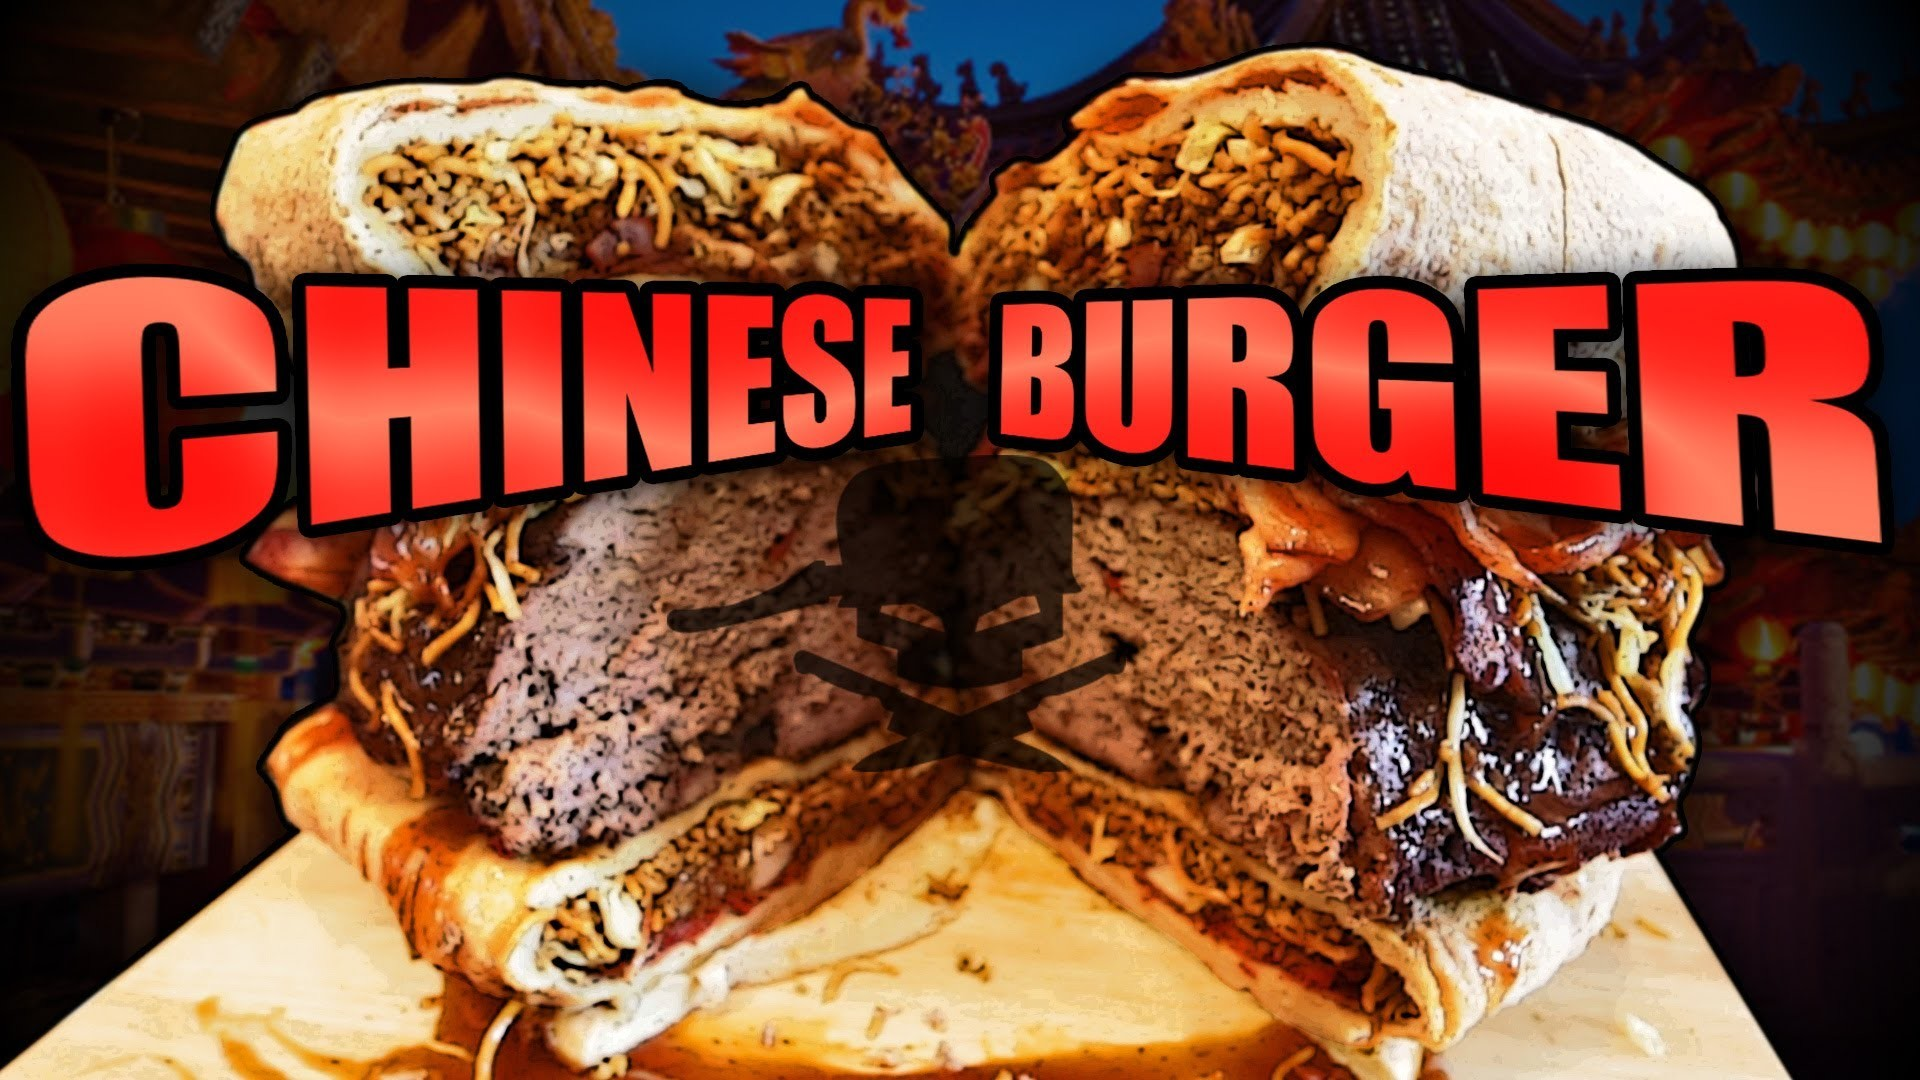 Chinese Burger - Epic Meal Time